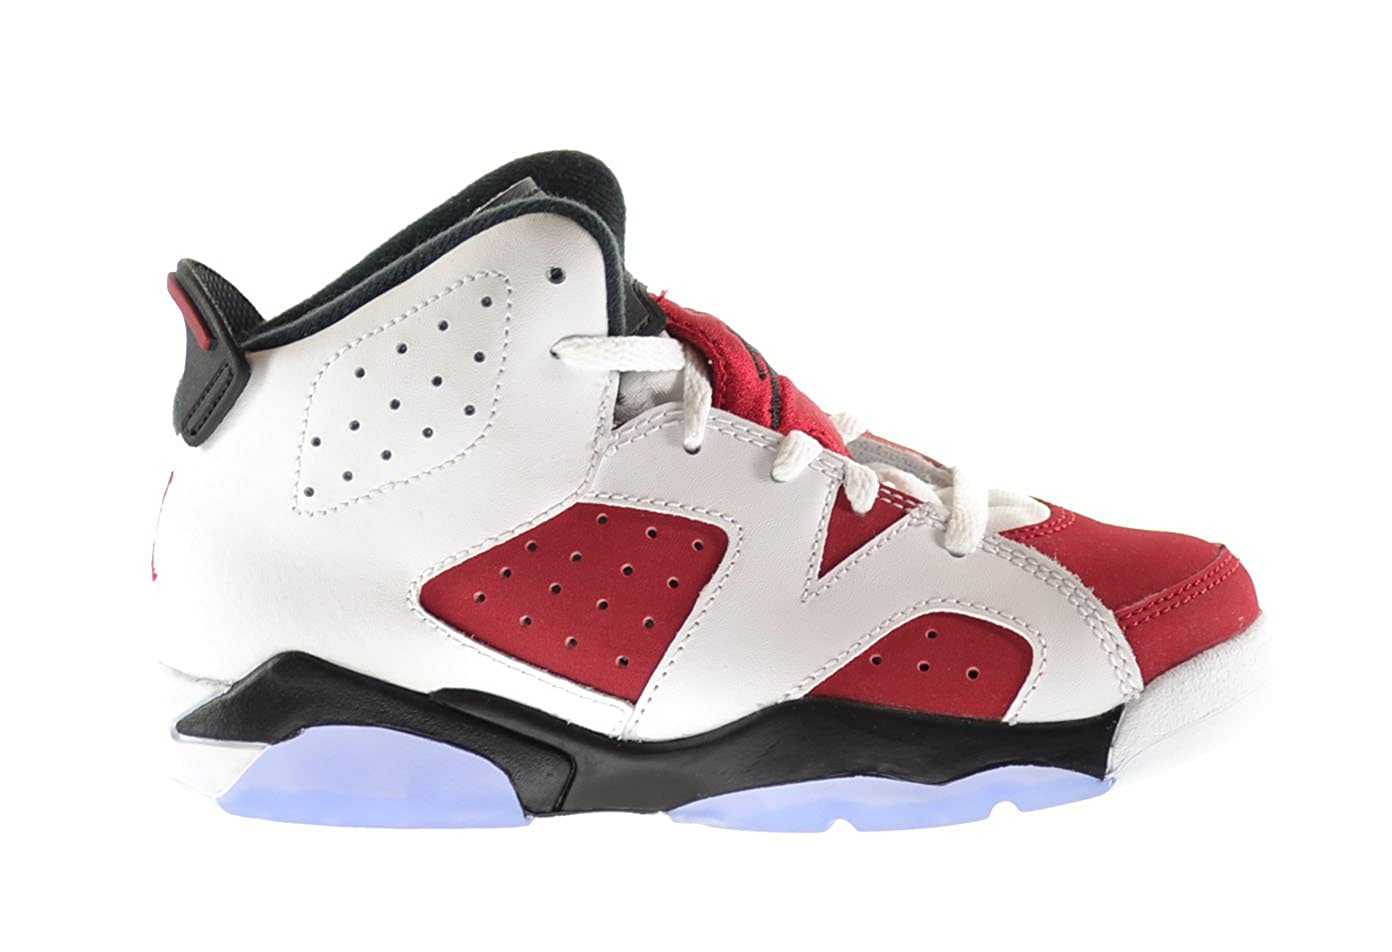 new concept 4054f adf5b Jordan Air Retro 6 BP Little Kids Shoes White/Carmine-Black 384666-160